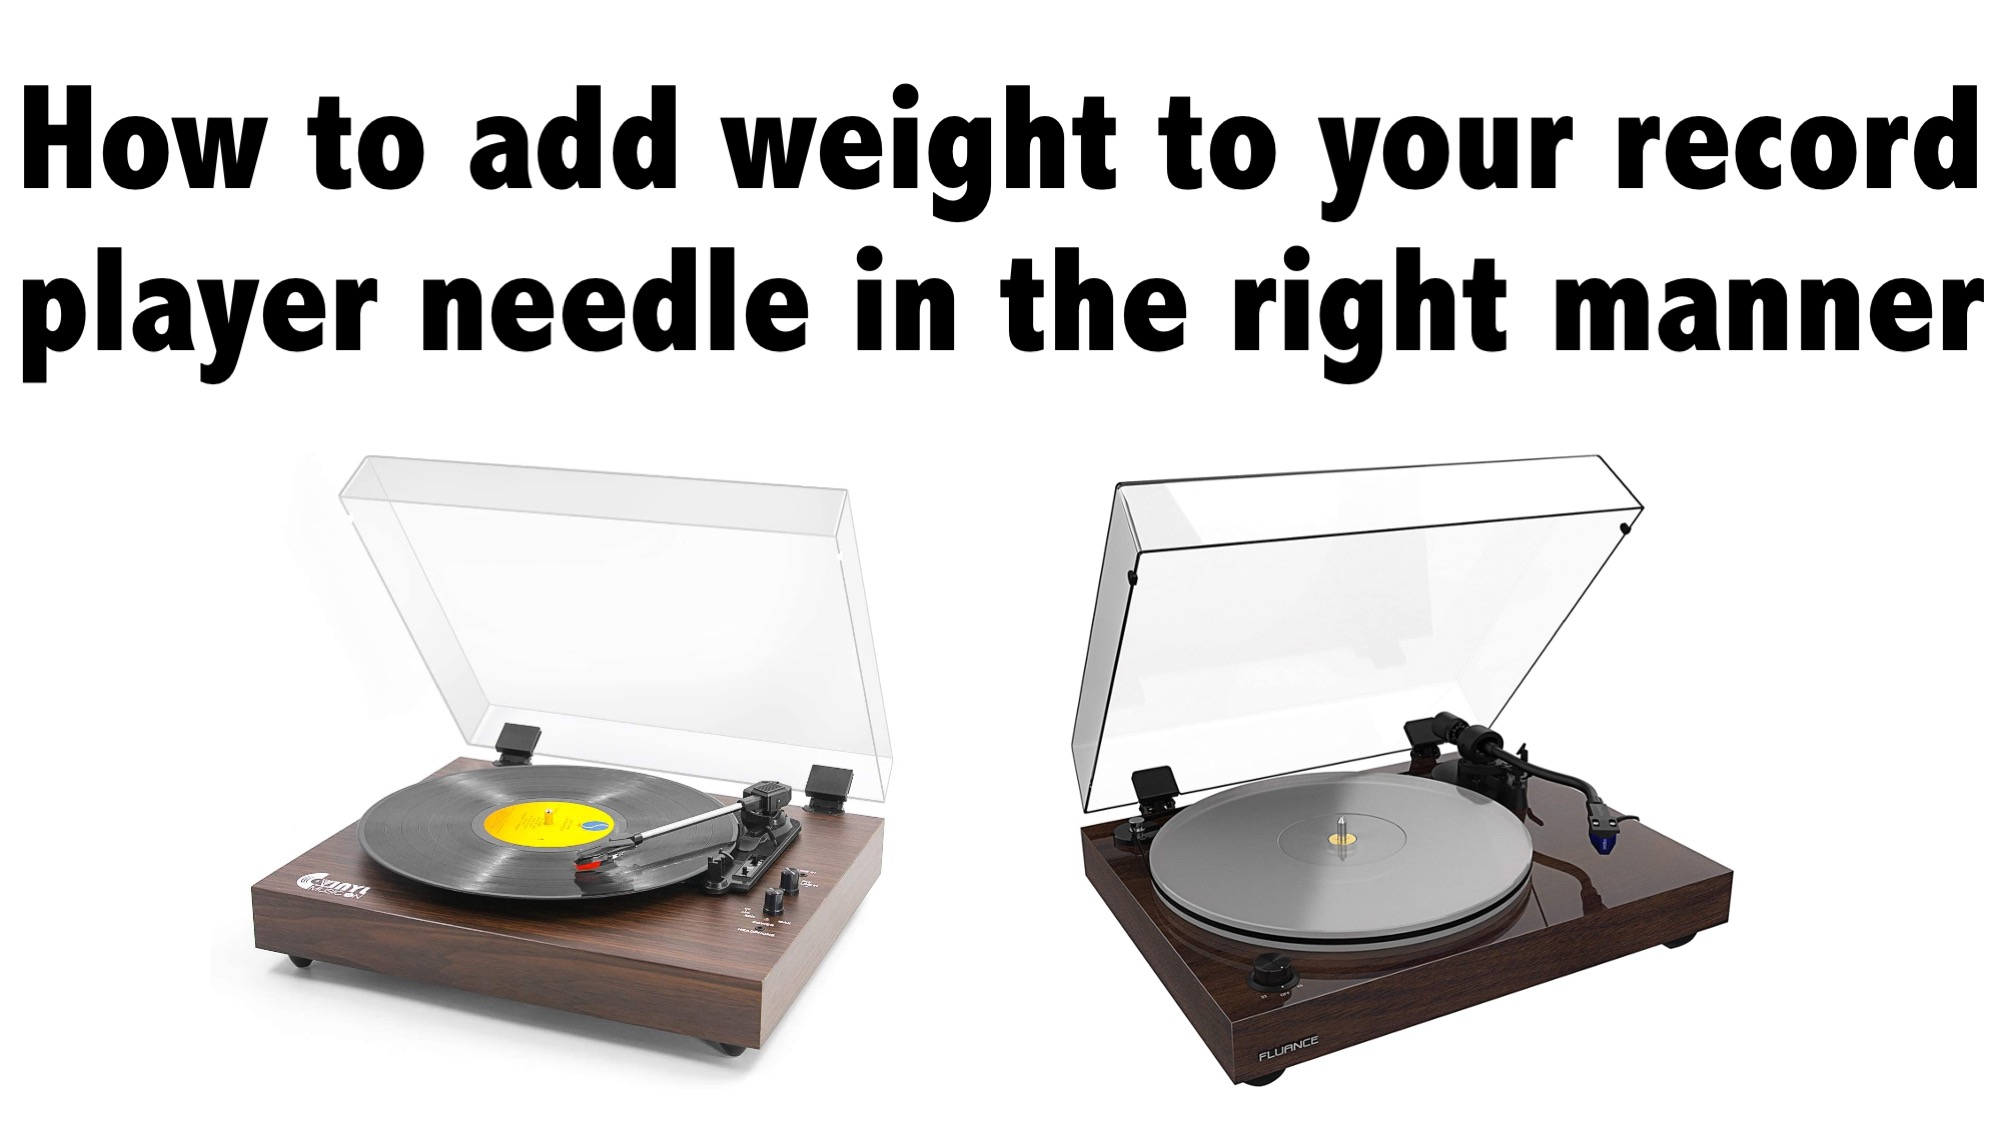 How to add weight to your record player needle in the right manner